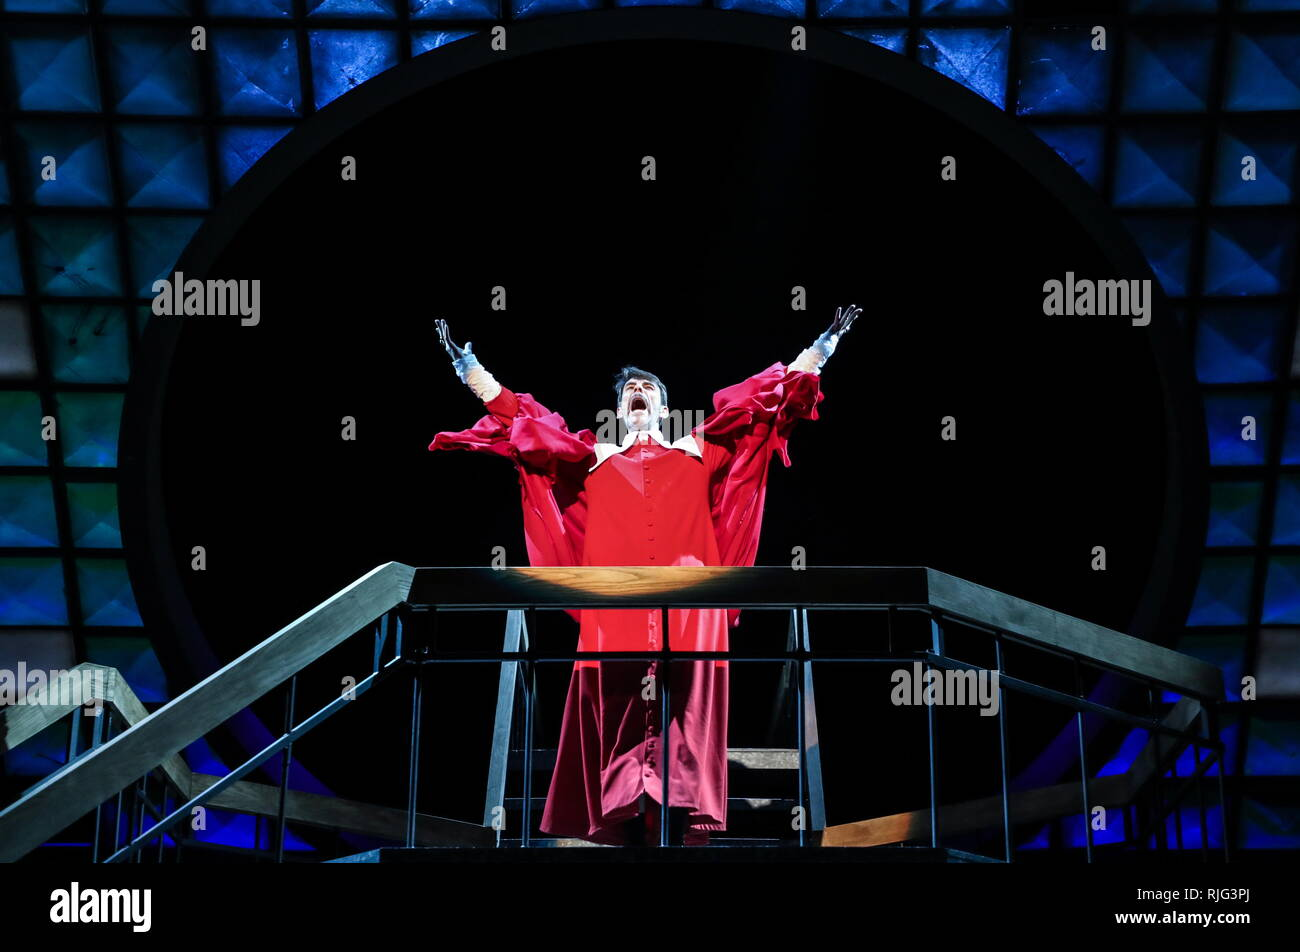 Moscow, Russia. 06th Feb, 2019. MOSCOW, RUSSIA - FEBRUARY 6, 2019: Actor Oleg Plaksin as Cardinal Richelieu in a scene from the Dyuma production based on a play by Ivan Okhlobystin and staged by Mikhail Yefremov at Sovremennik Theatre. Vyacheslav Prokofyev/TASS Credit: ITAR-TASS News Agency/Alamy Live News - Stock Image